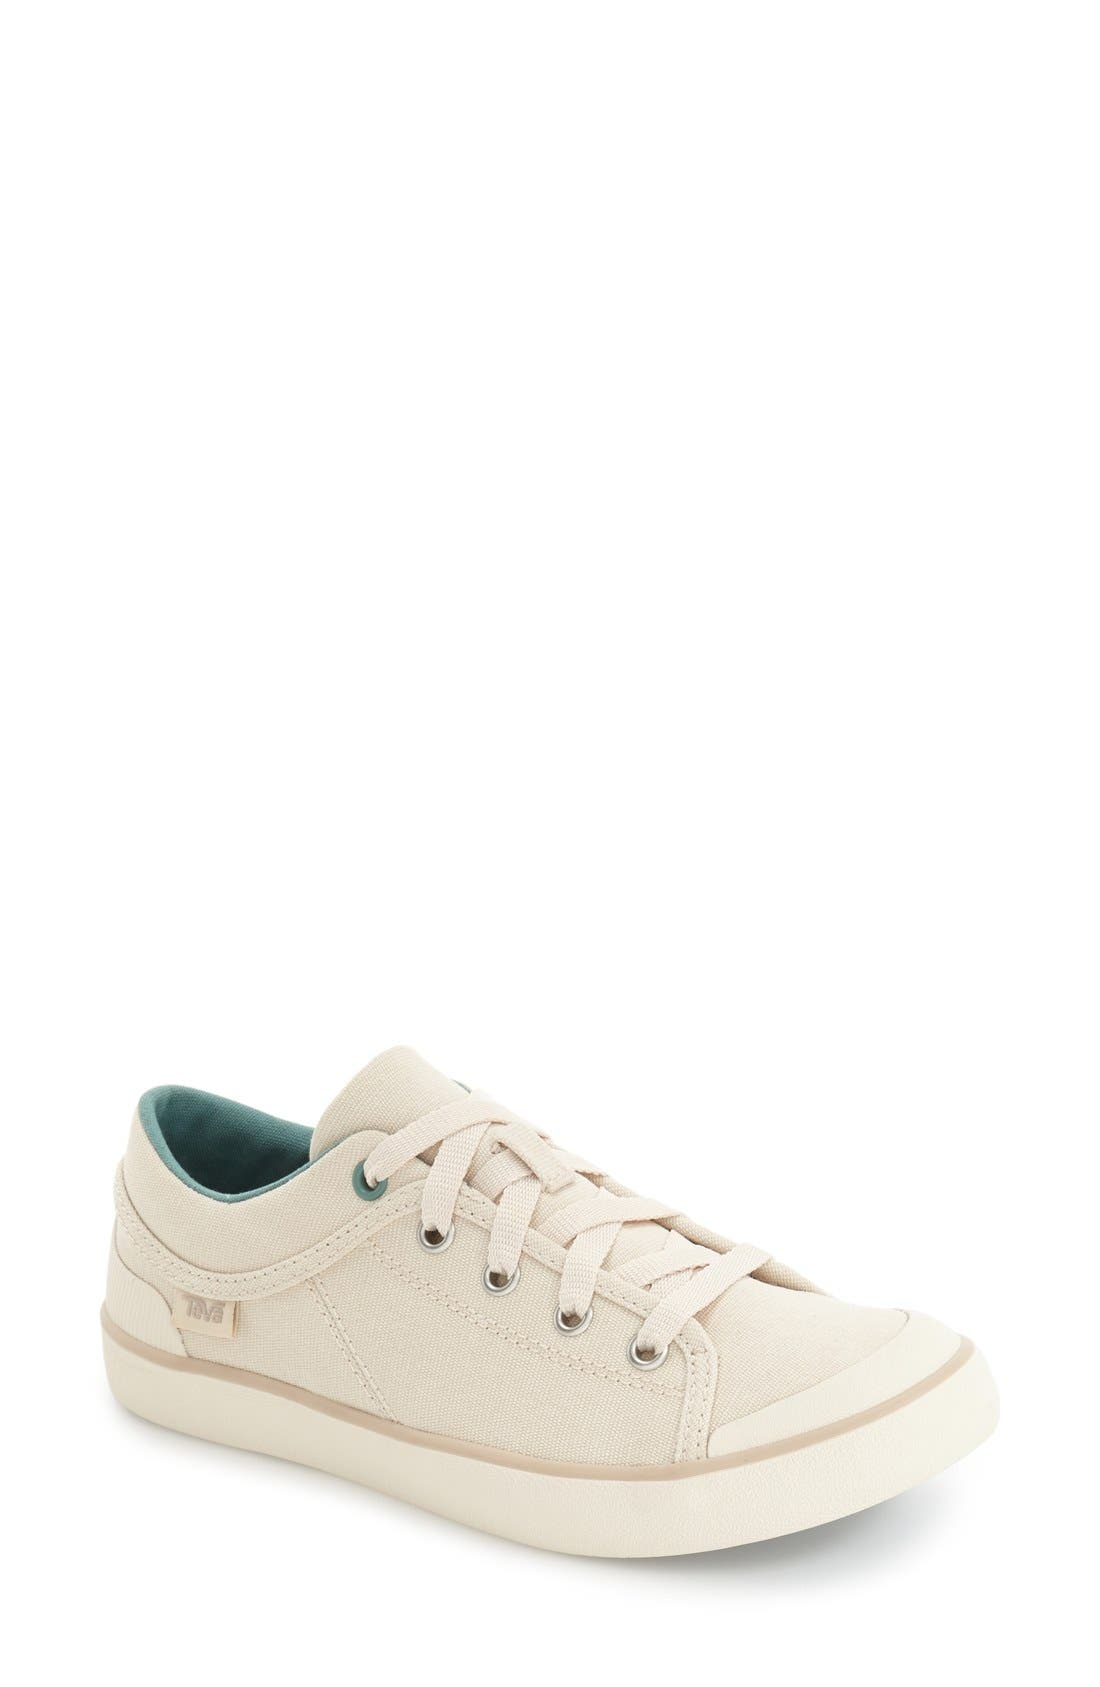 'freewheel' Sneaker by Teva